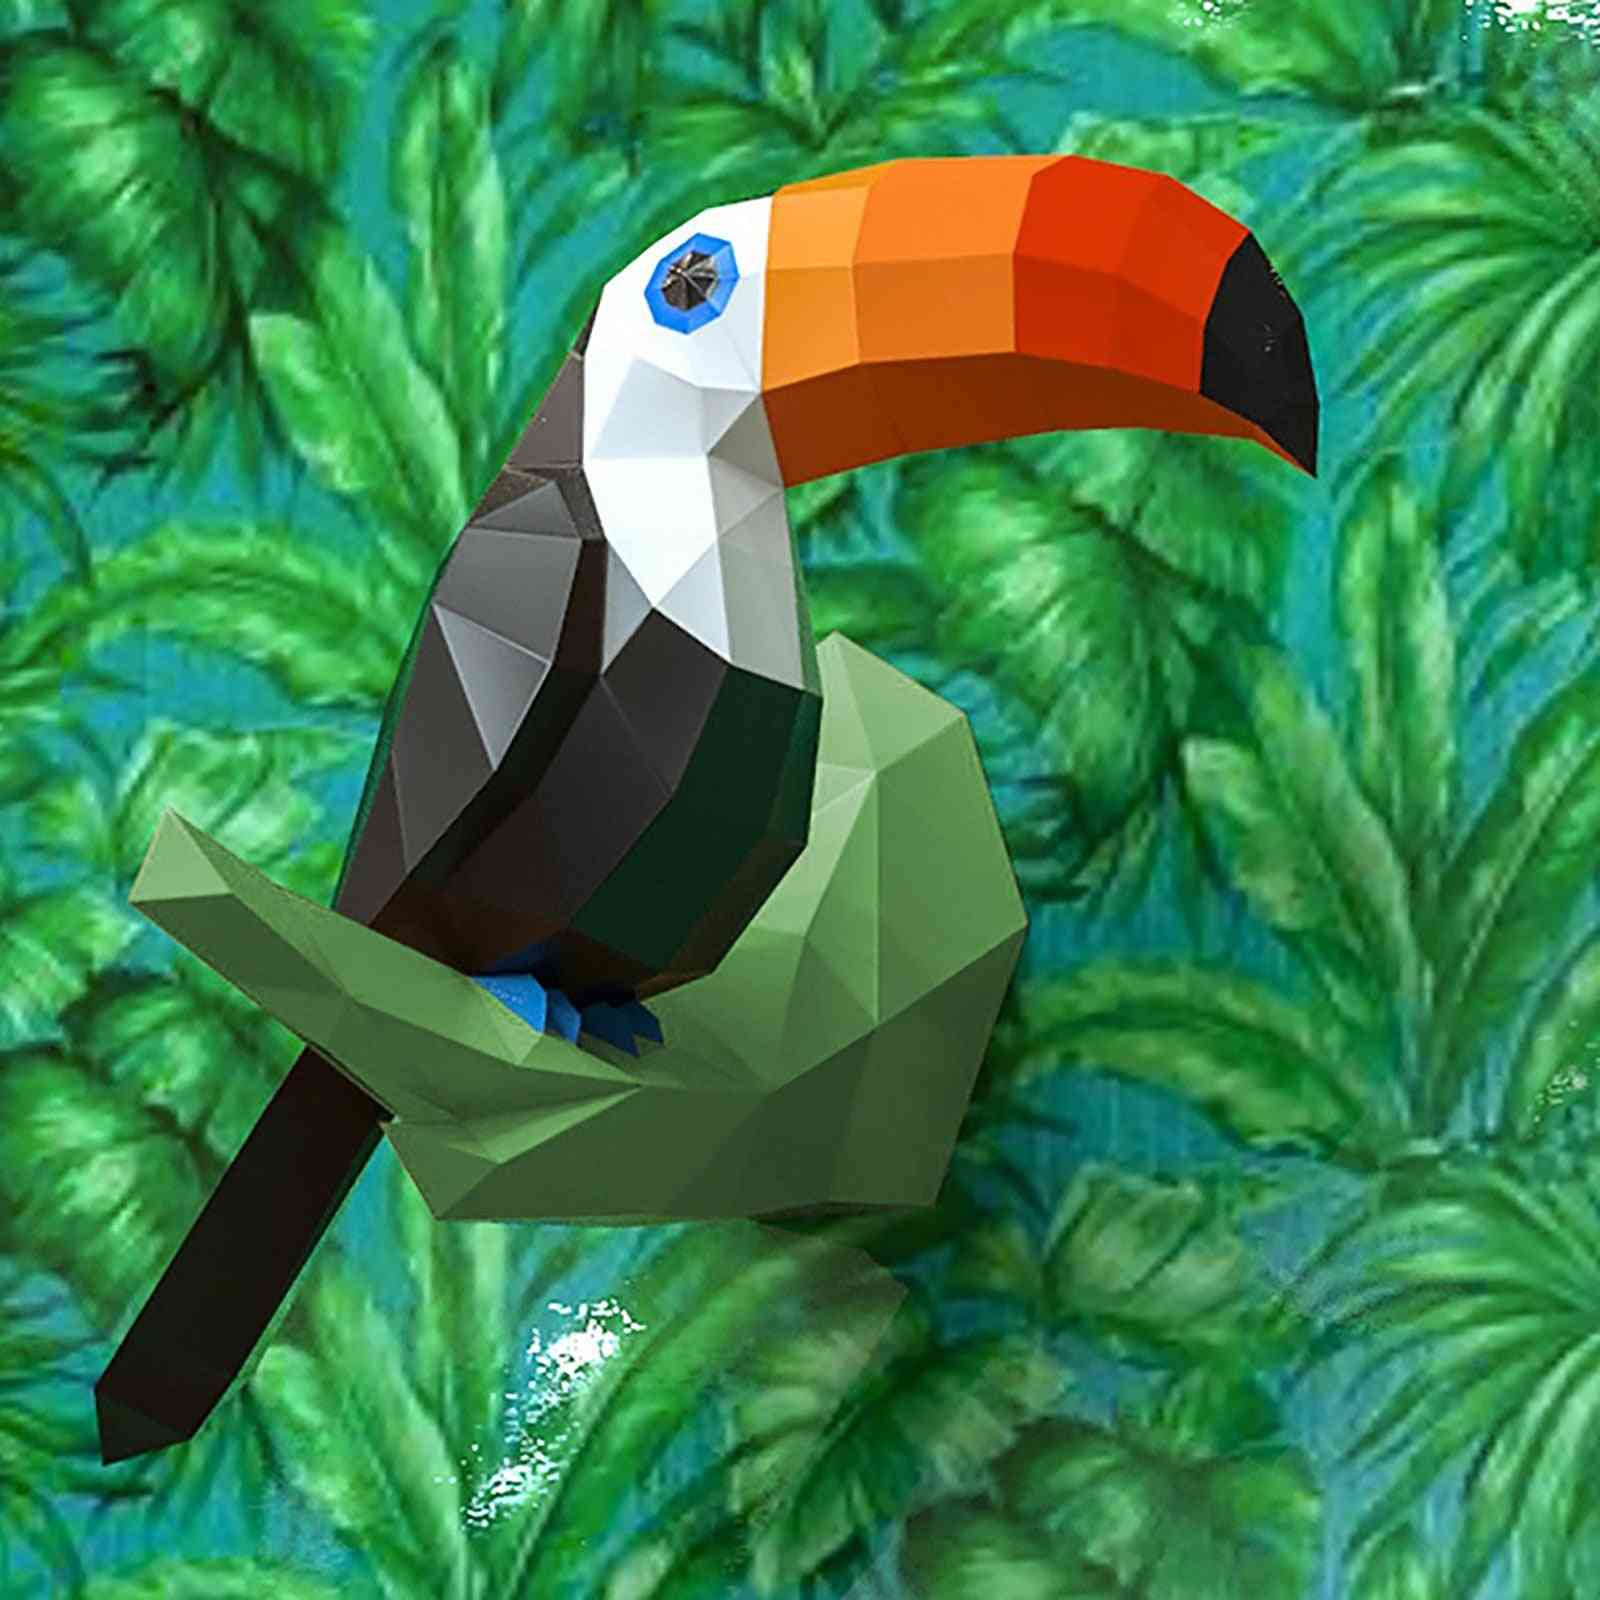 3d Model- Papercraft Creative Animals, Home Wall Decoration, Puzzles